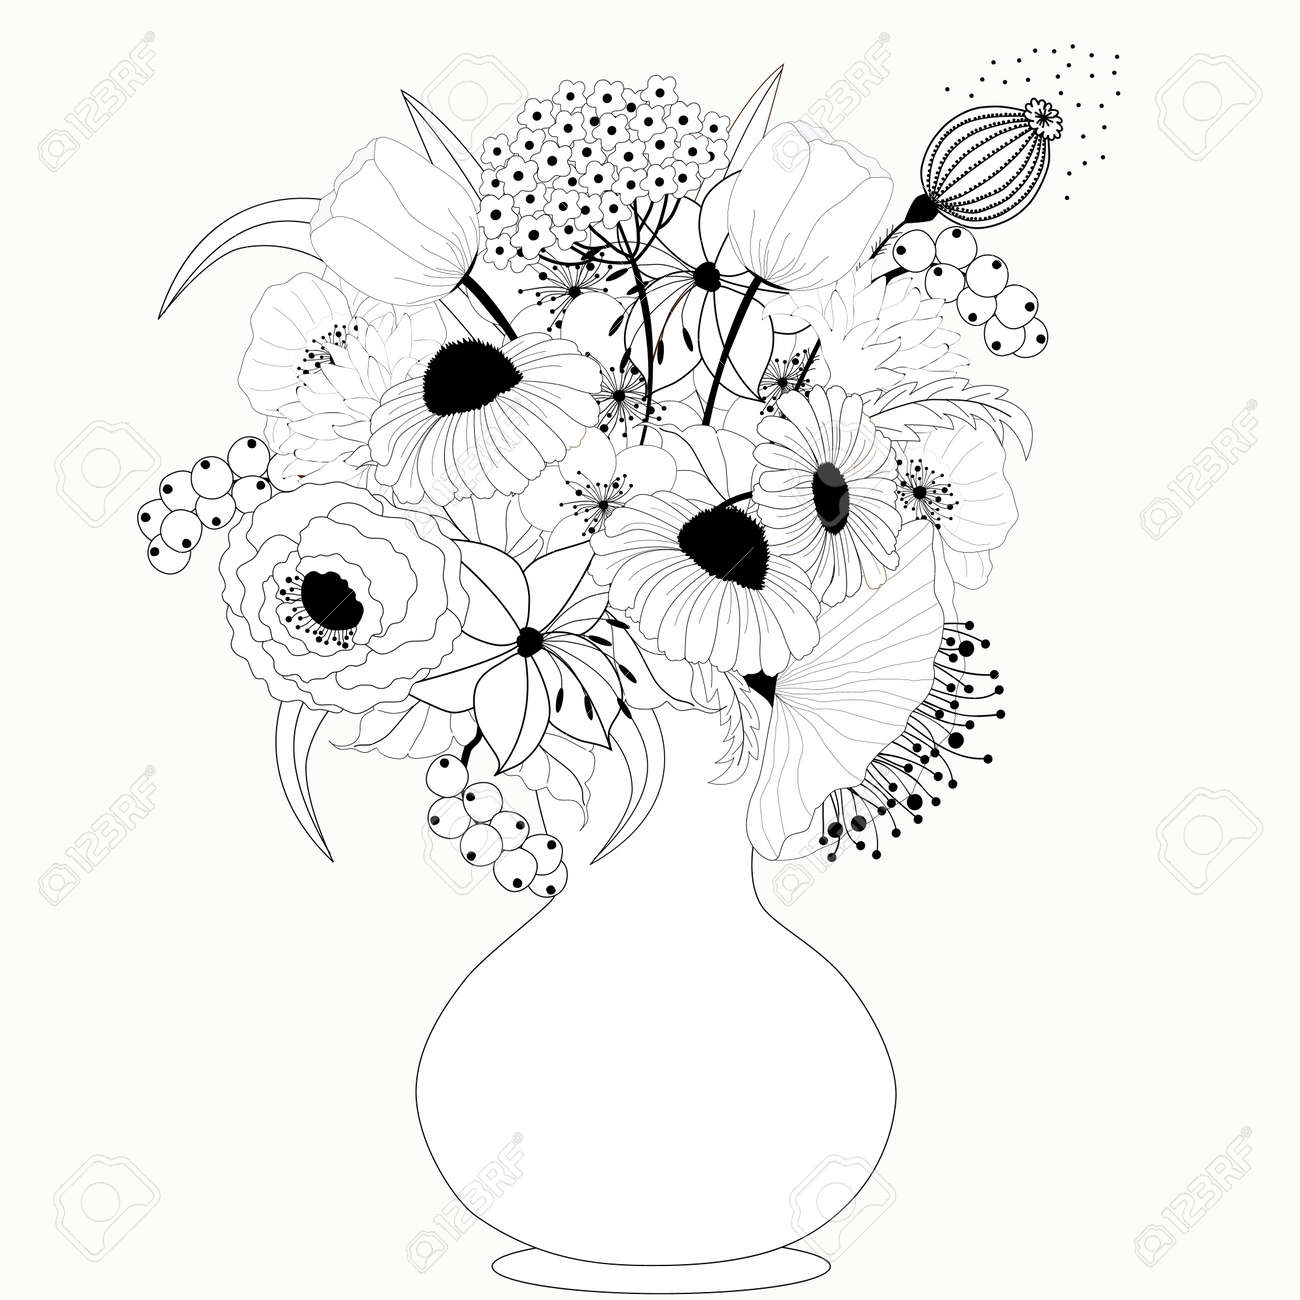 Black and white flowers royalty free cliparts vectors and stock black and white flowers stock vector 25237225 mightylinksfo